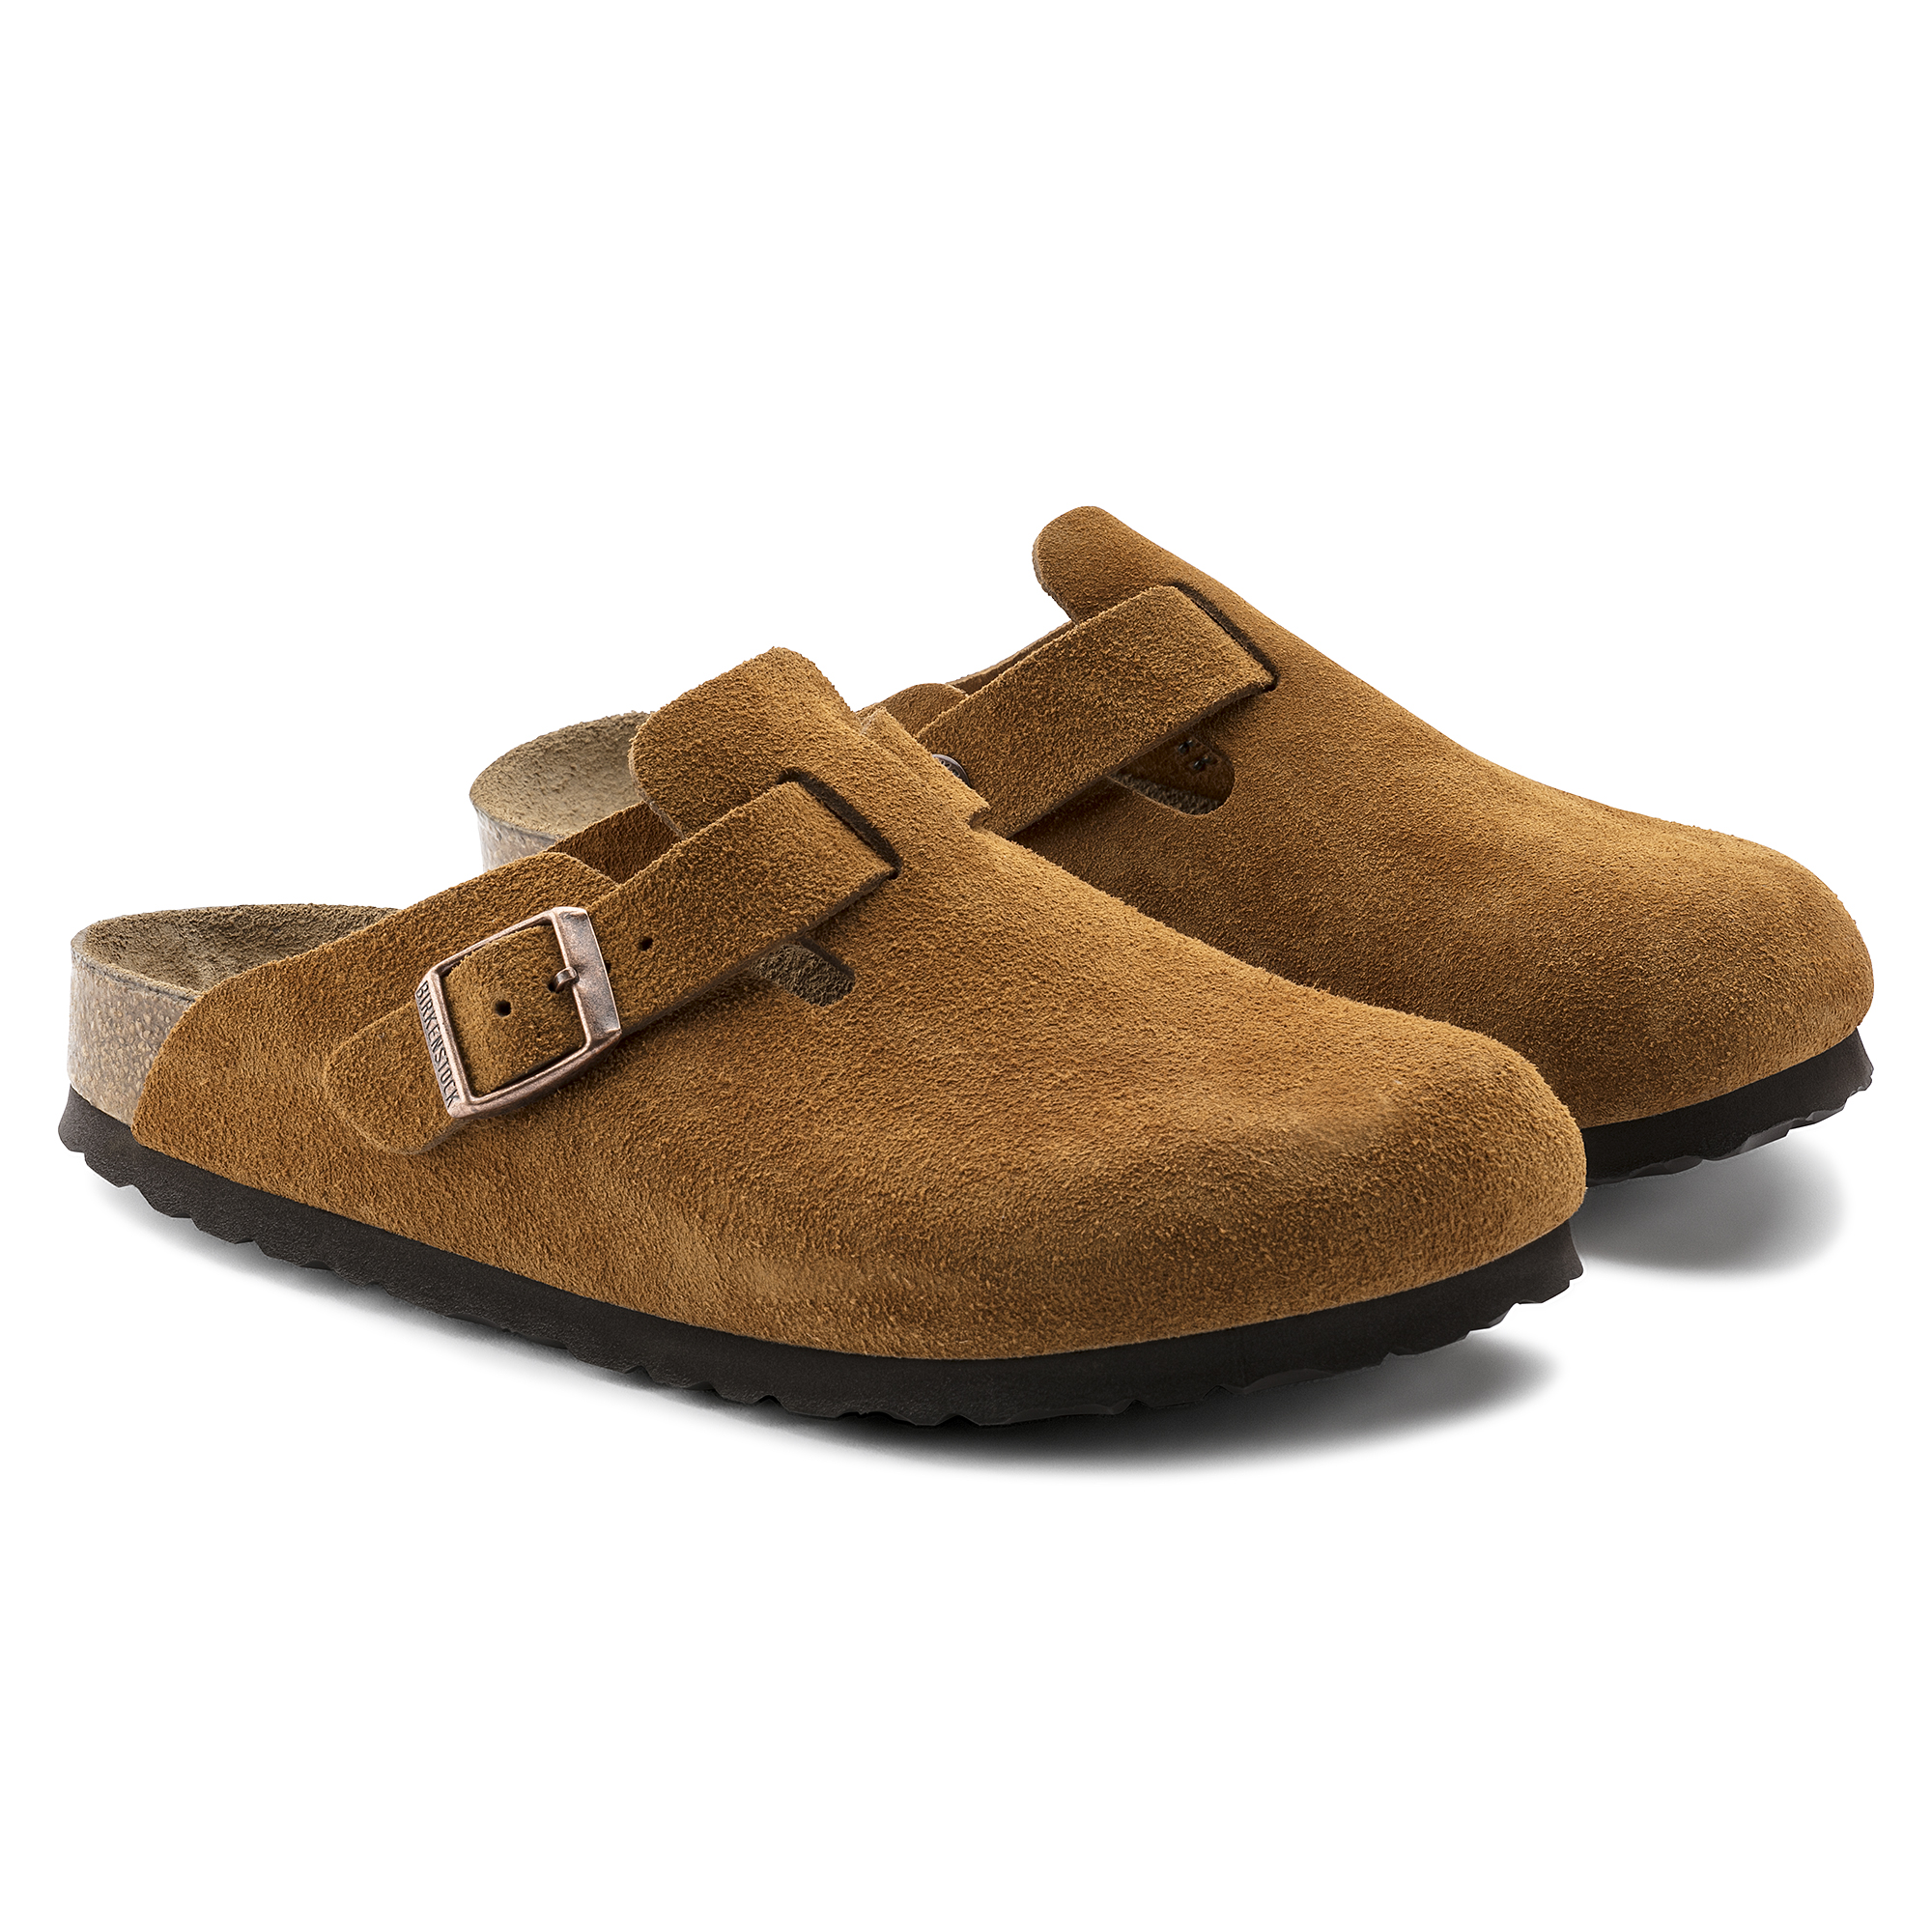 0bb1d8b49206 ... Boston Suede Leather Mink ...